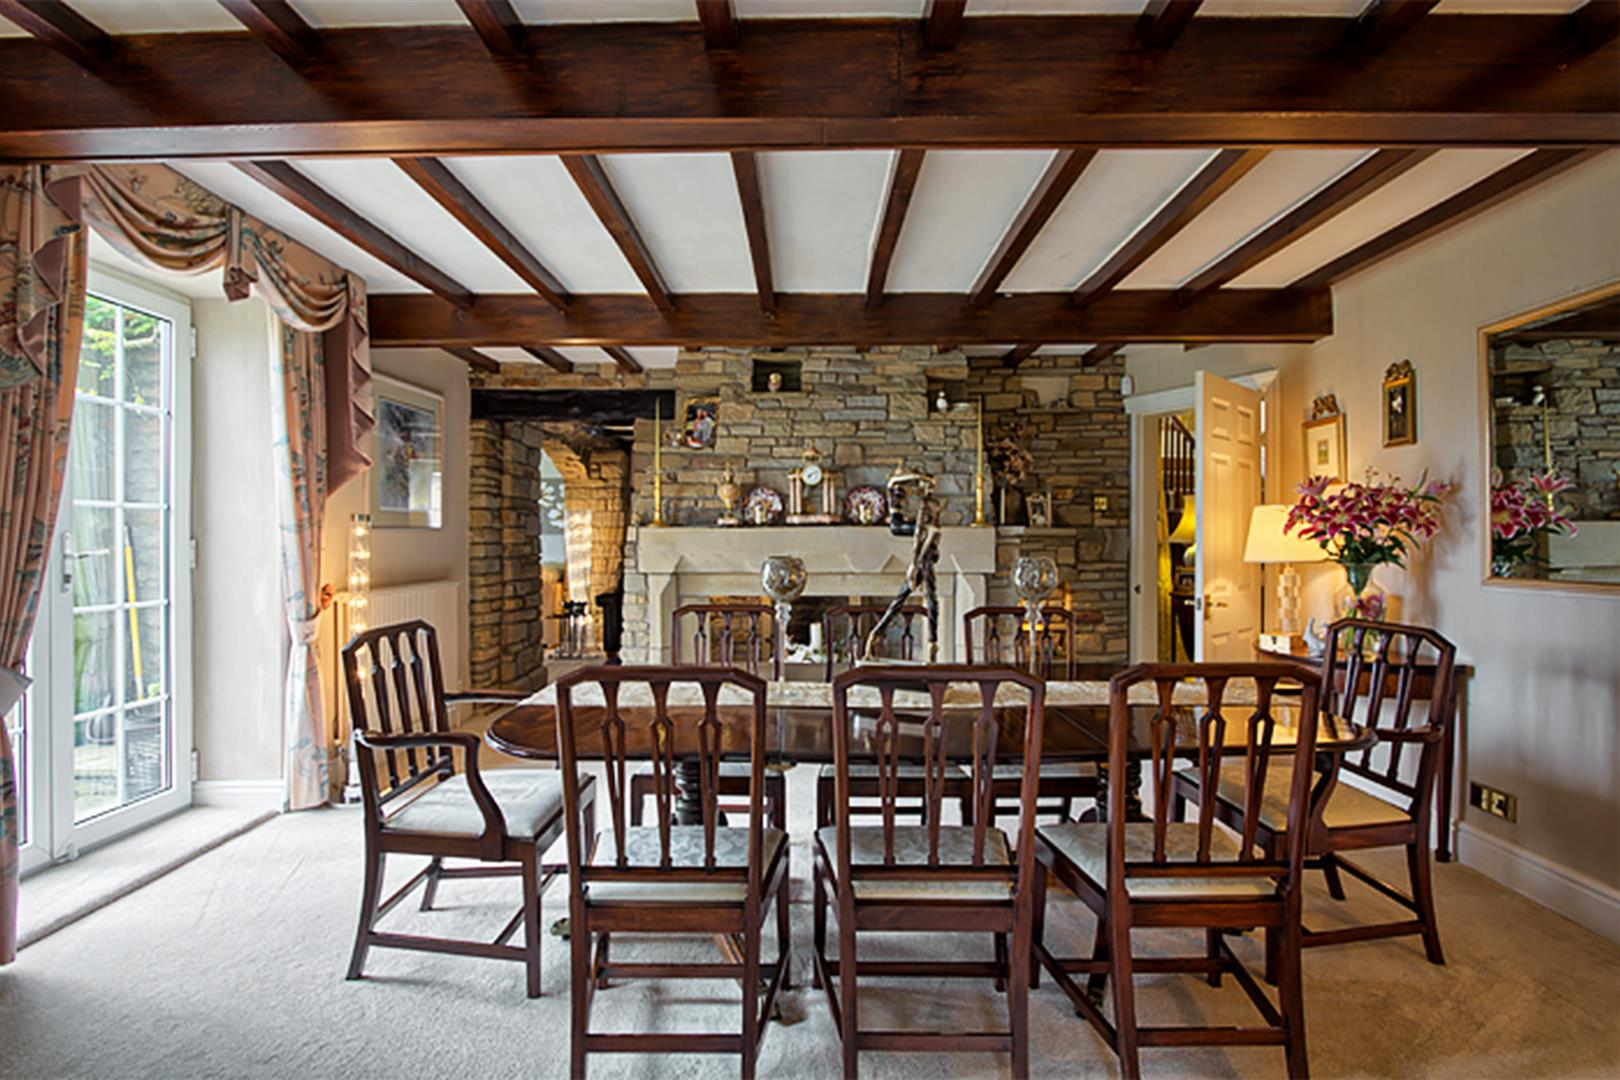 4 bedroom house For Sale in Bolton - dining room.png.